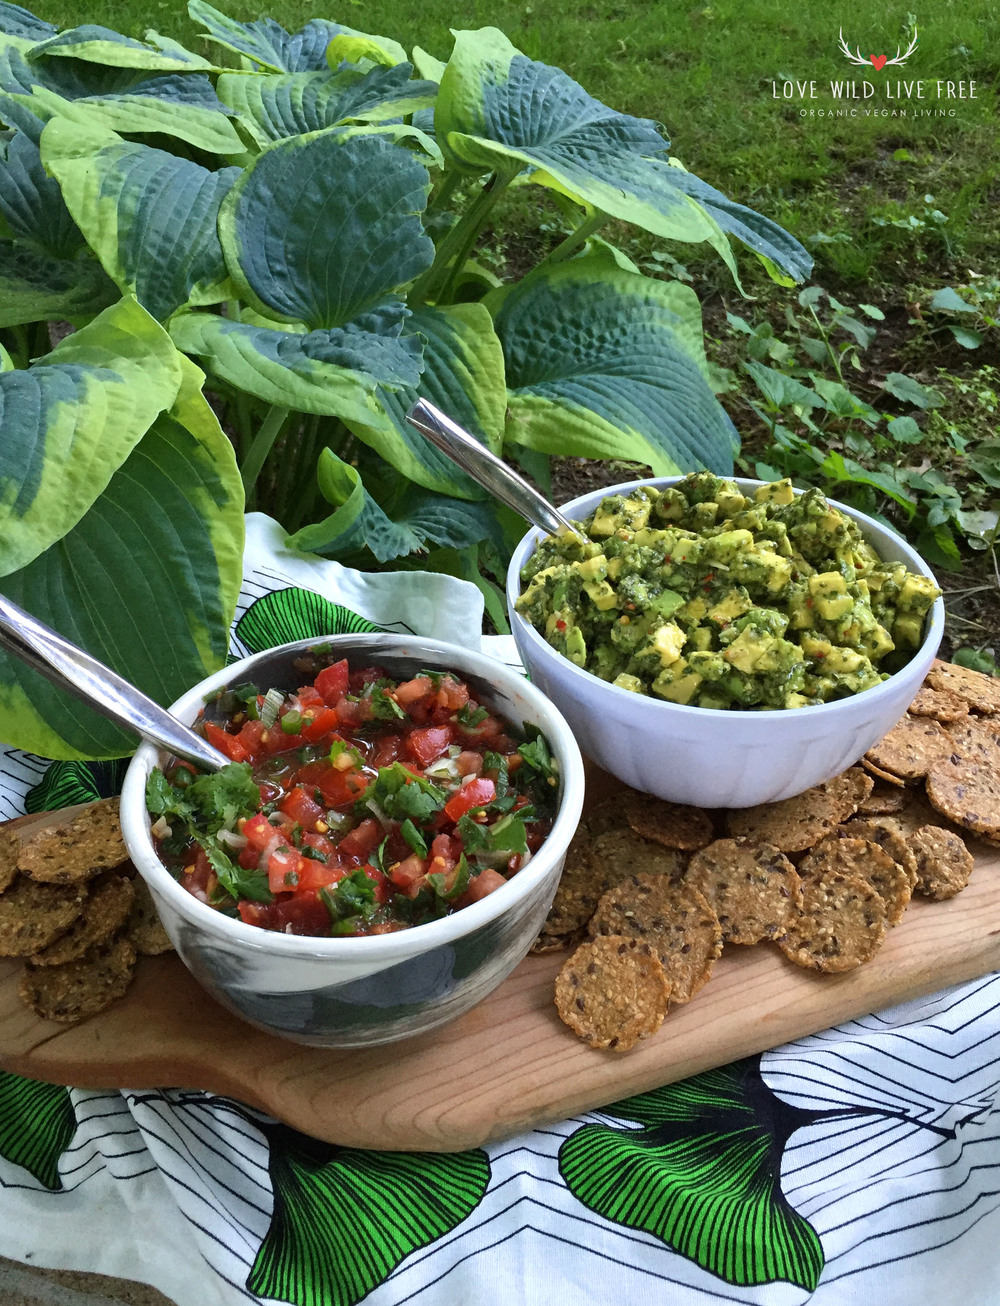 Unbaked Cake Co.'s Raw Vegan Avocado Chimi pairs nicely with my Fresh and Raw Tomato Salsa for the perfect party appetizer. Get the Chimi recipe  here .